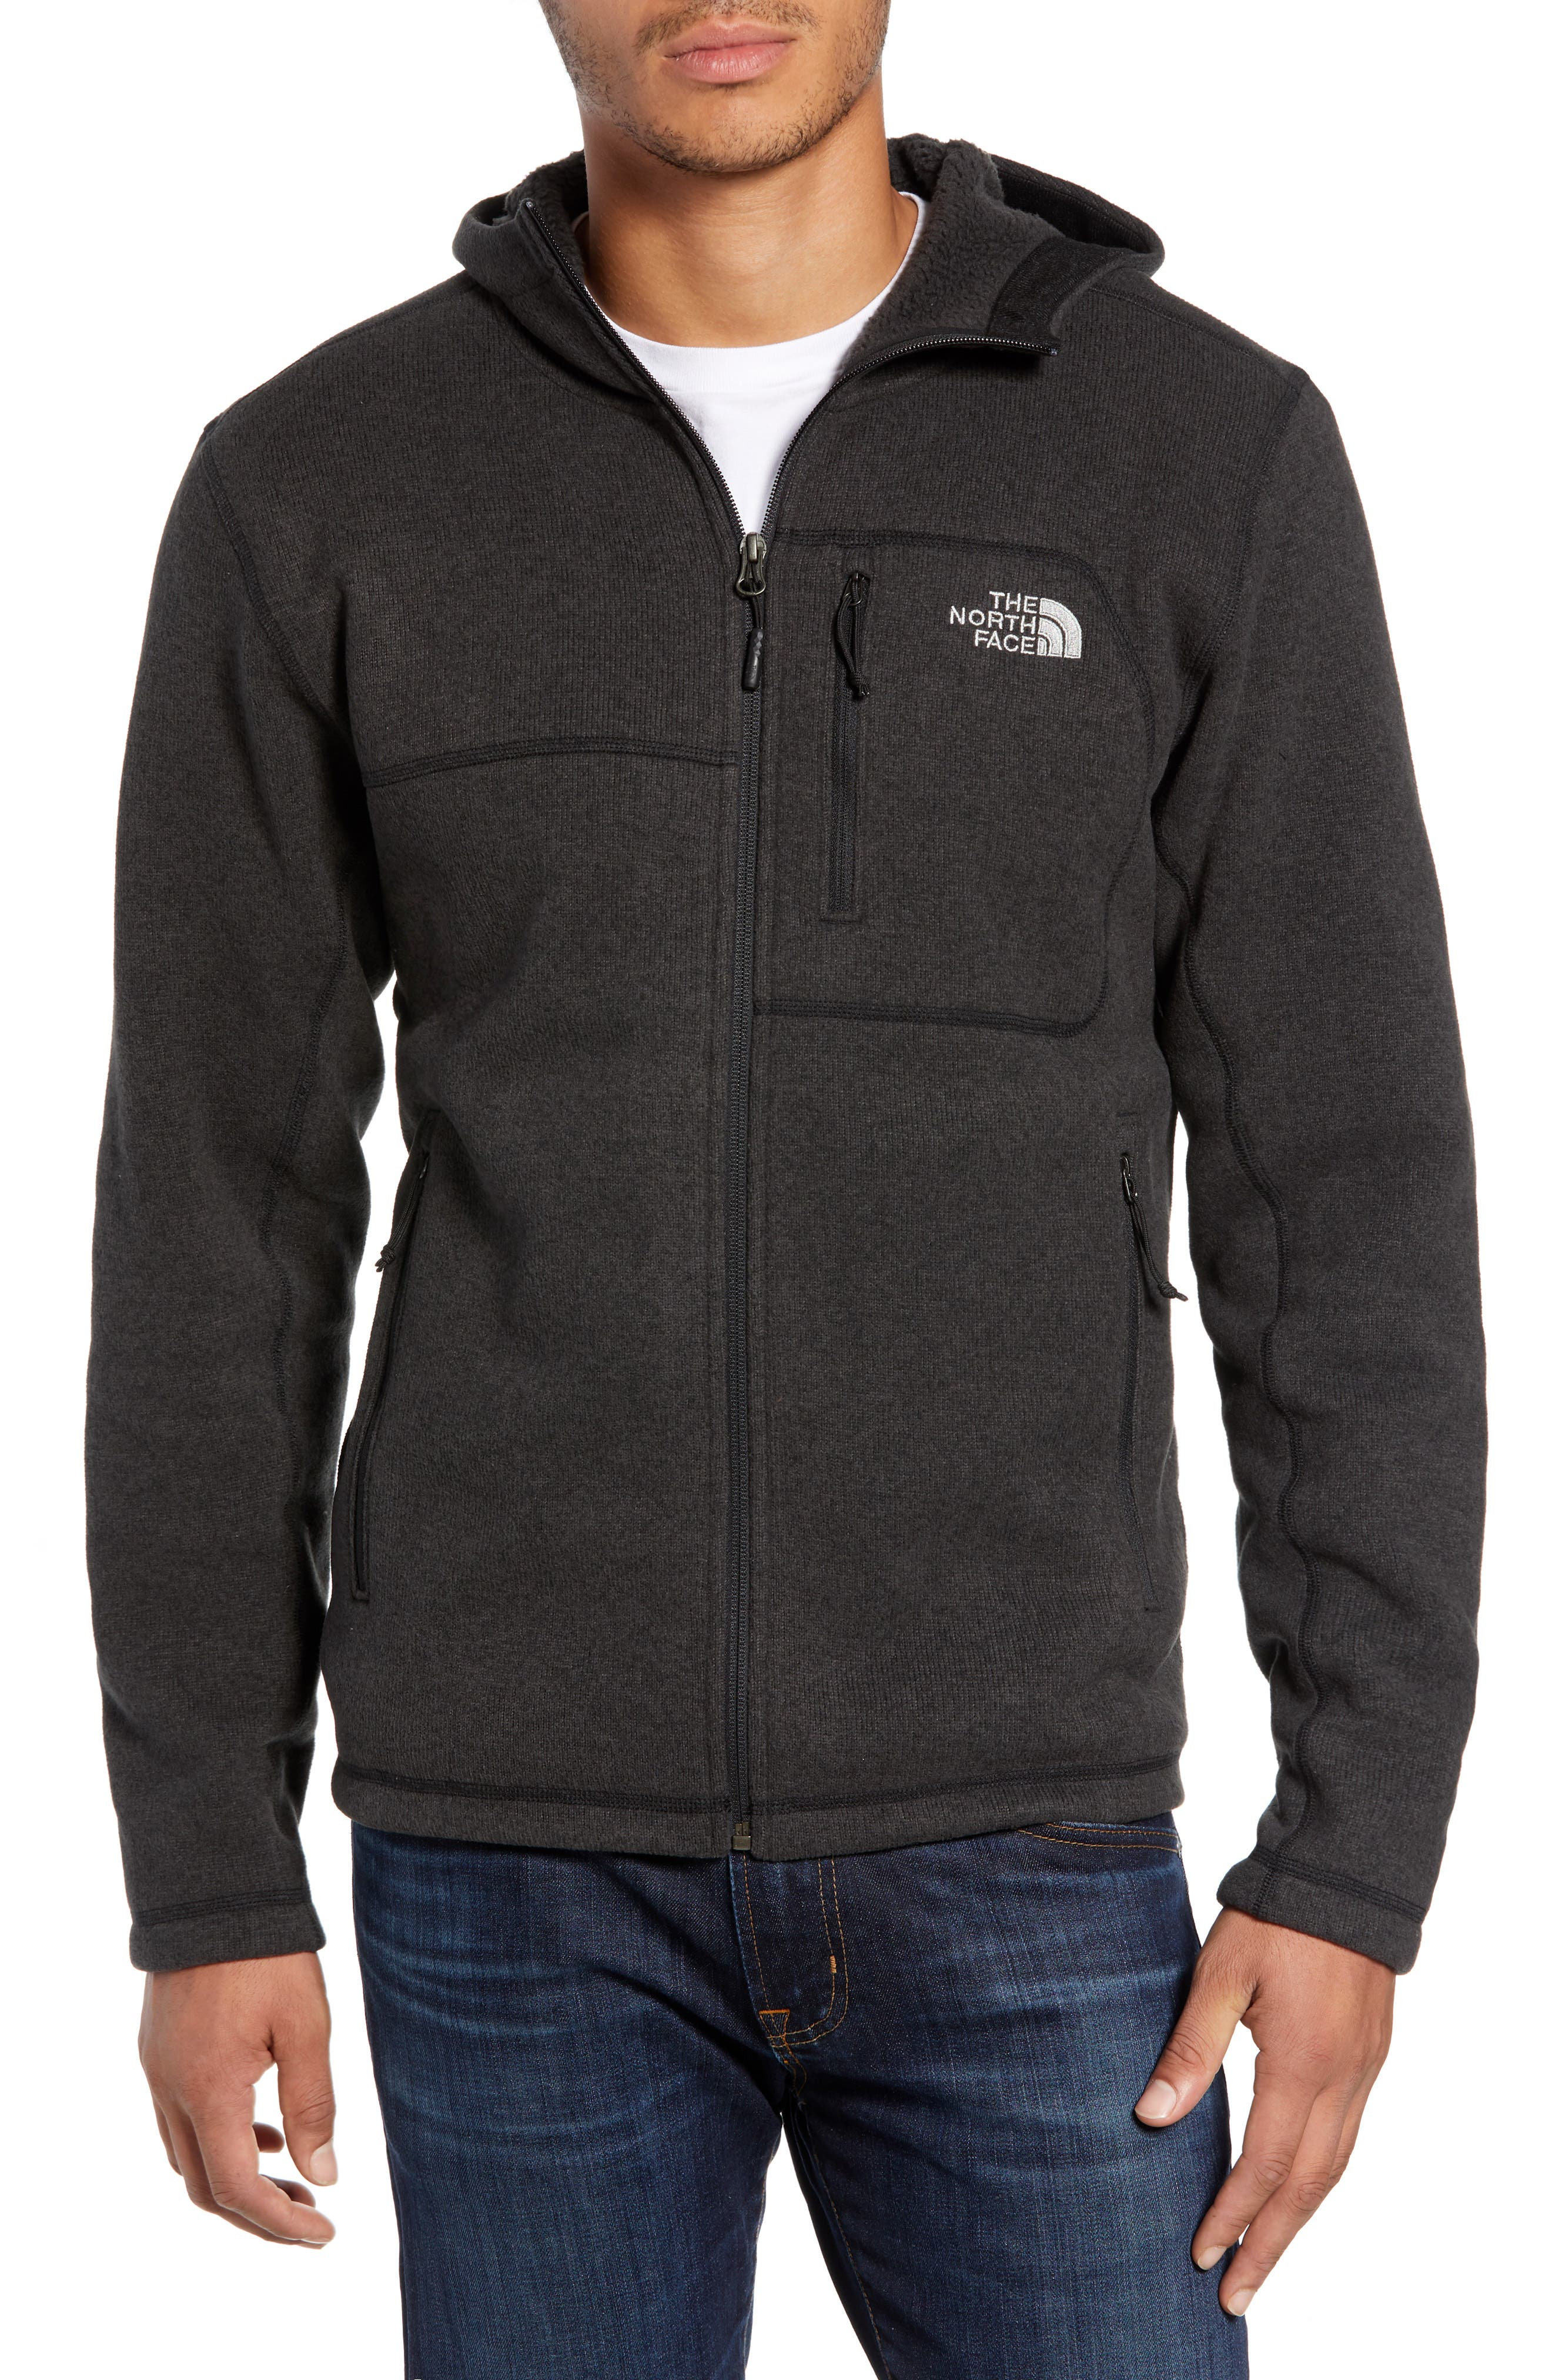 Gordon Lyons Relaxed Fit Sweater Fleece Hoodie,                         Main,                         color, TNF BLACK HEATHER